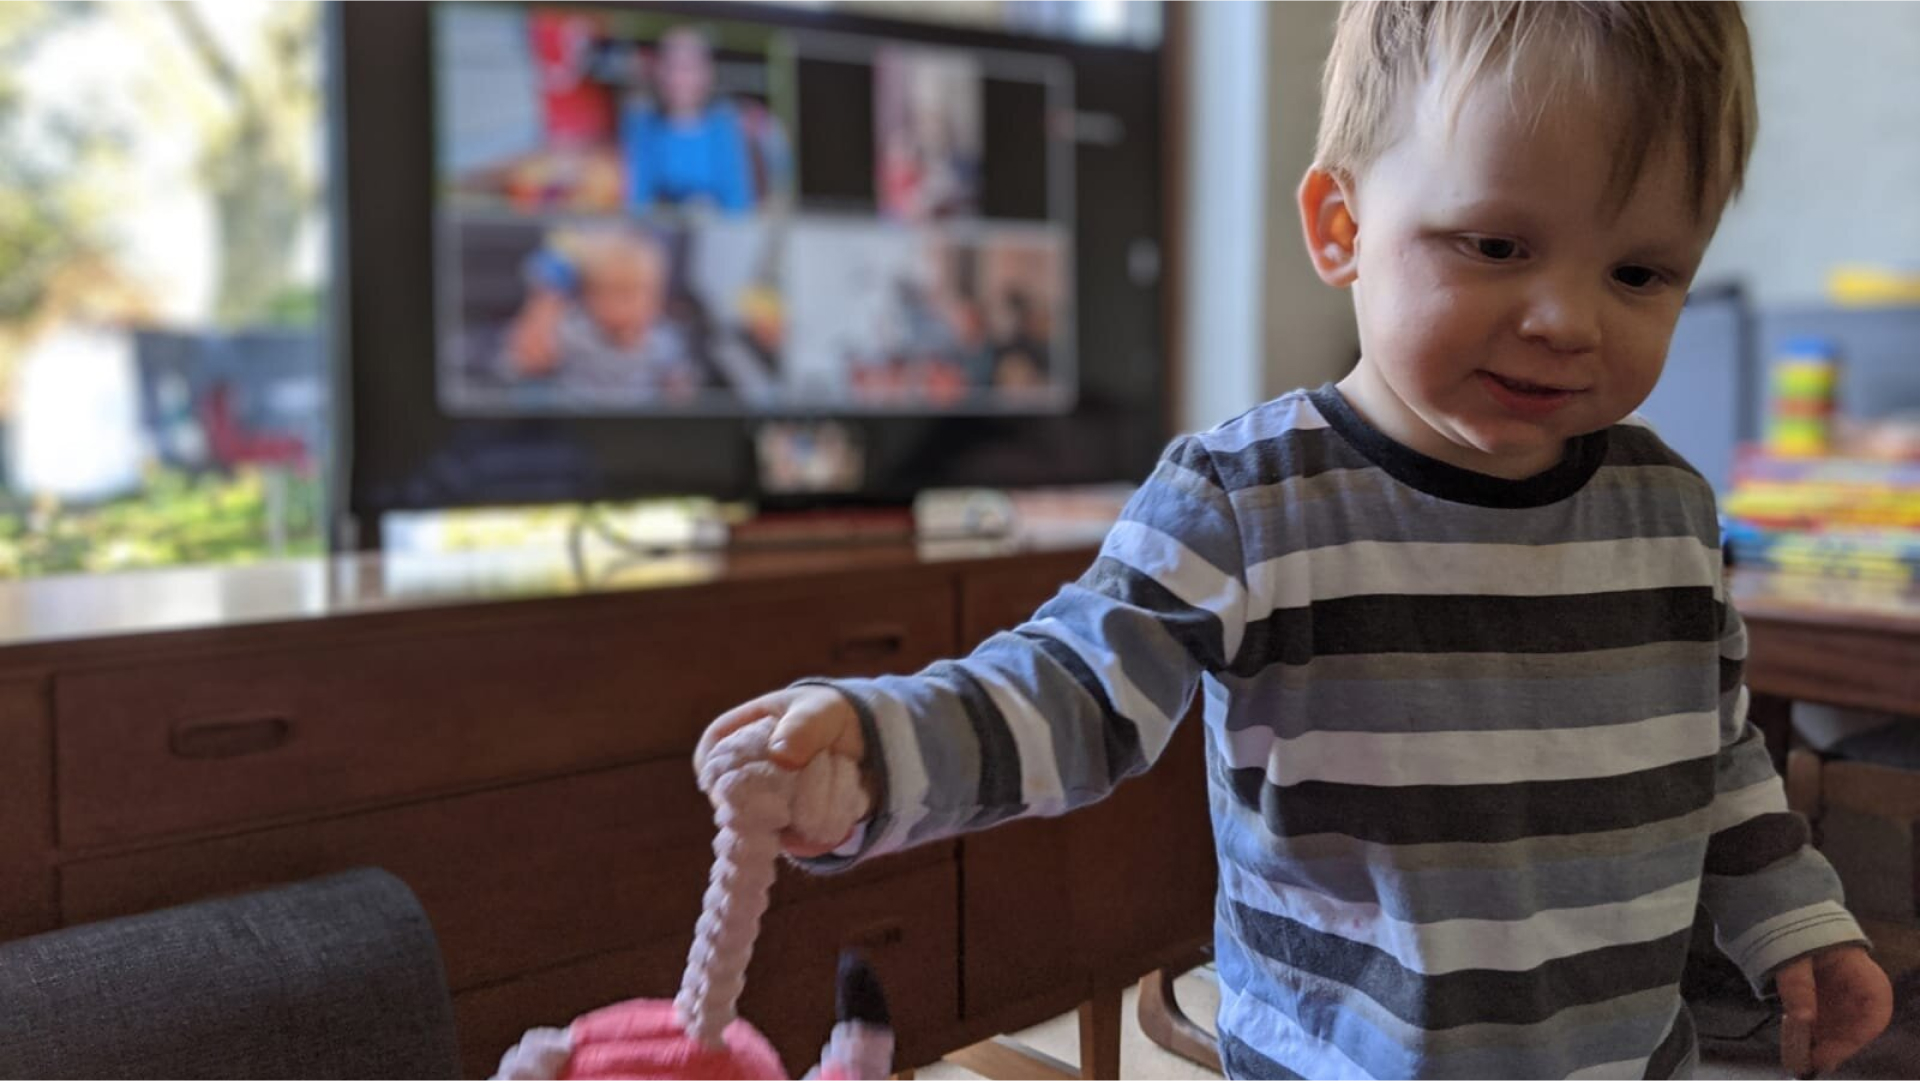 Photo of a boy holding a toy